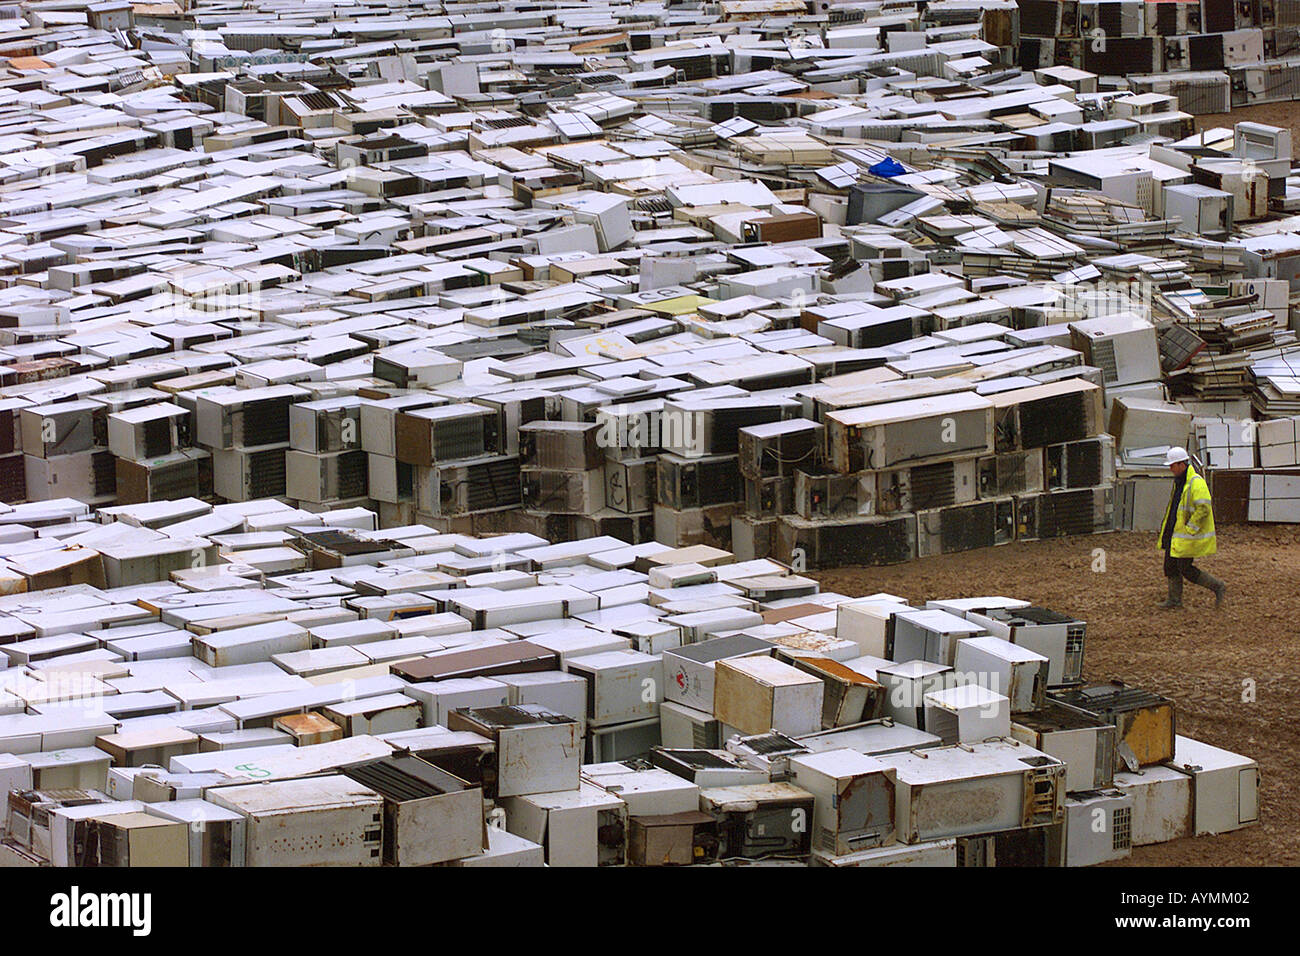 Some of the 6000 fridges at the Connon Bridge landfill site near East Taphouse in Cornwall UK Stock Photo